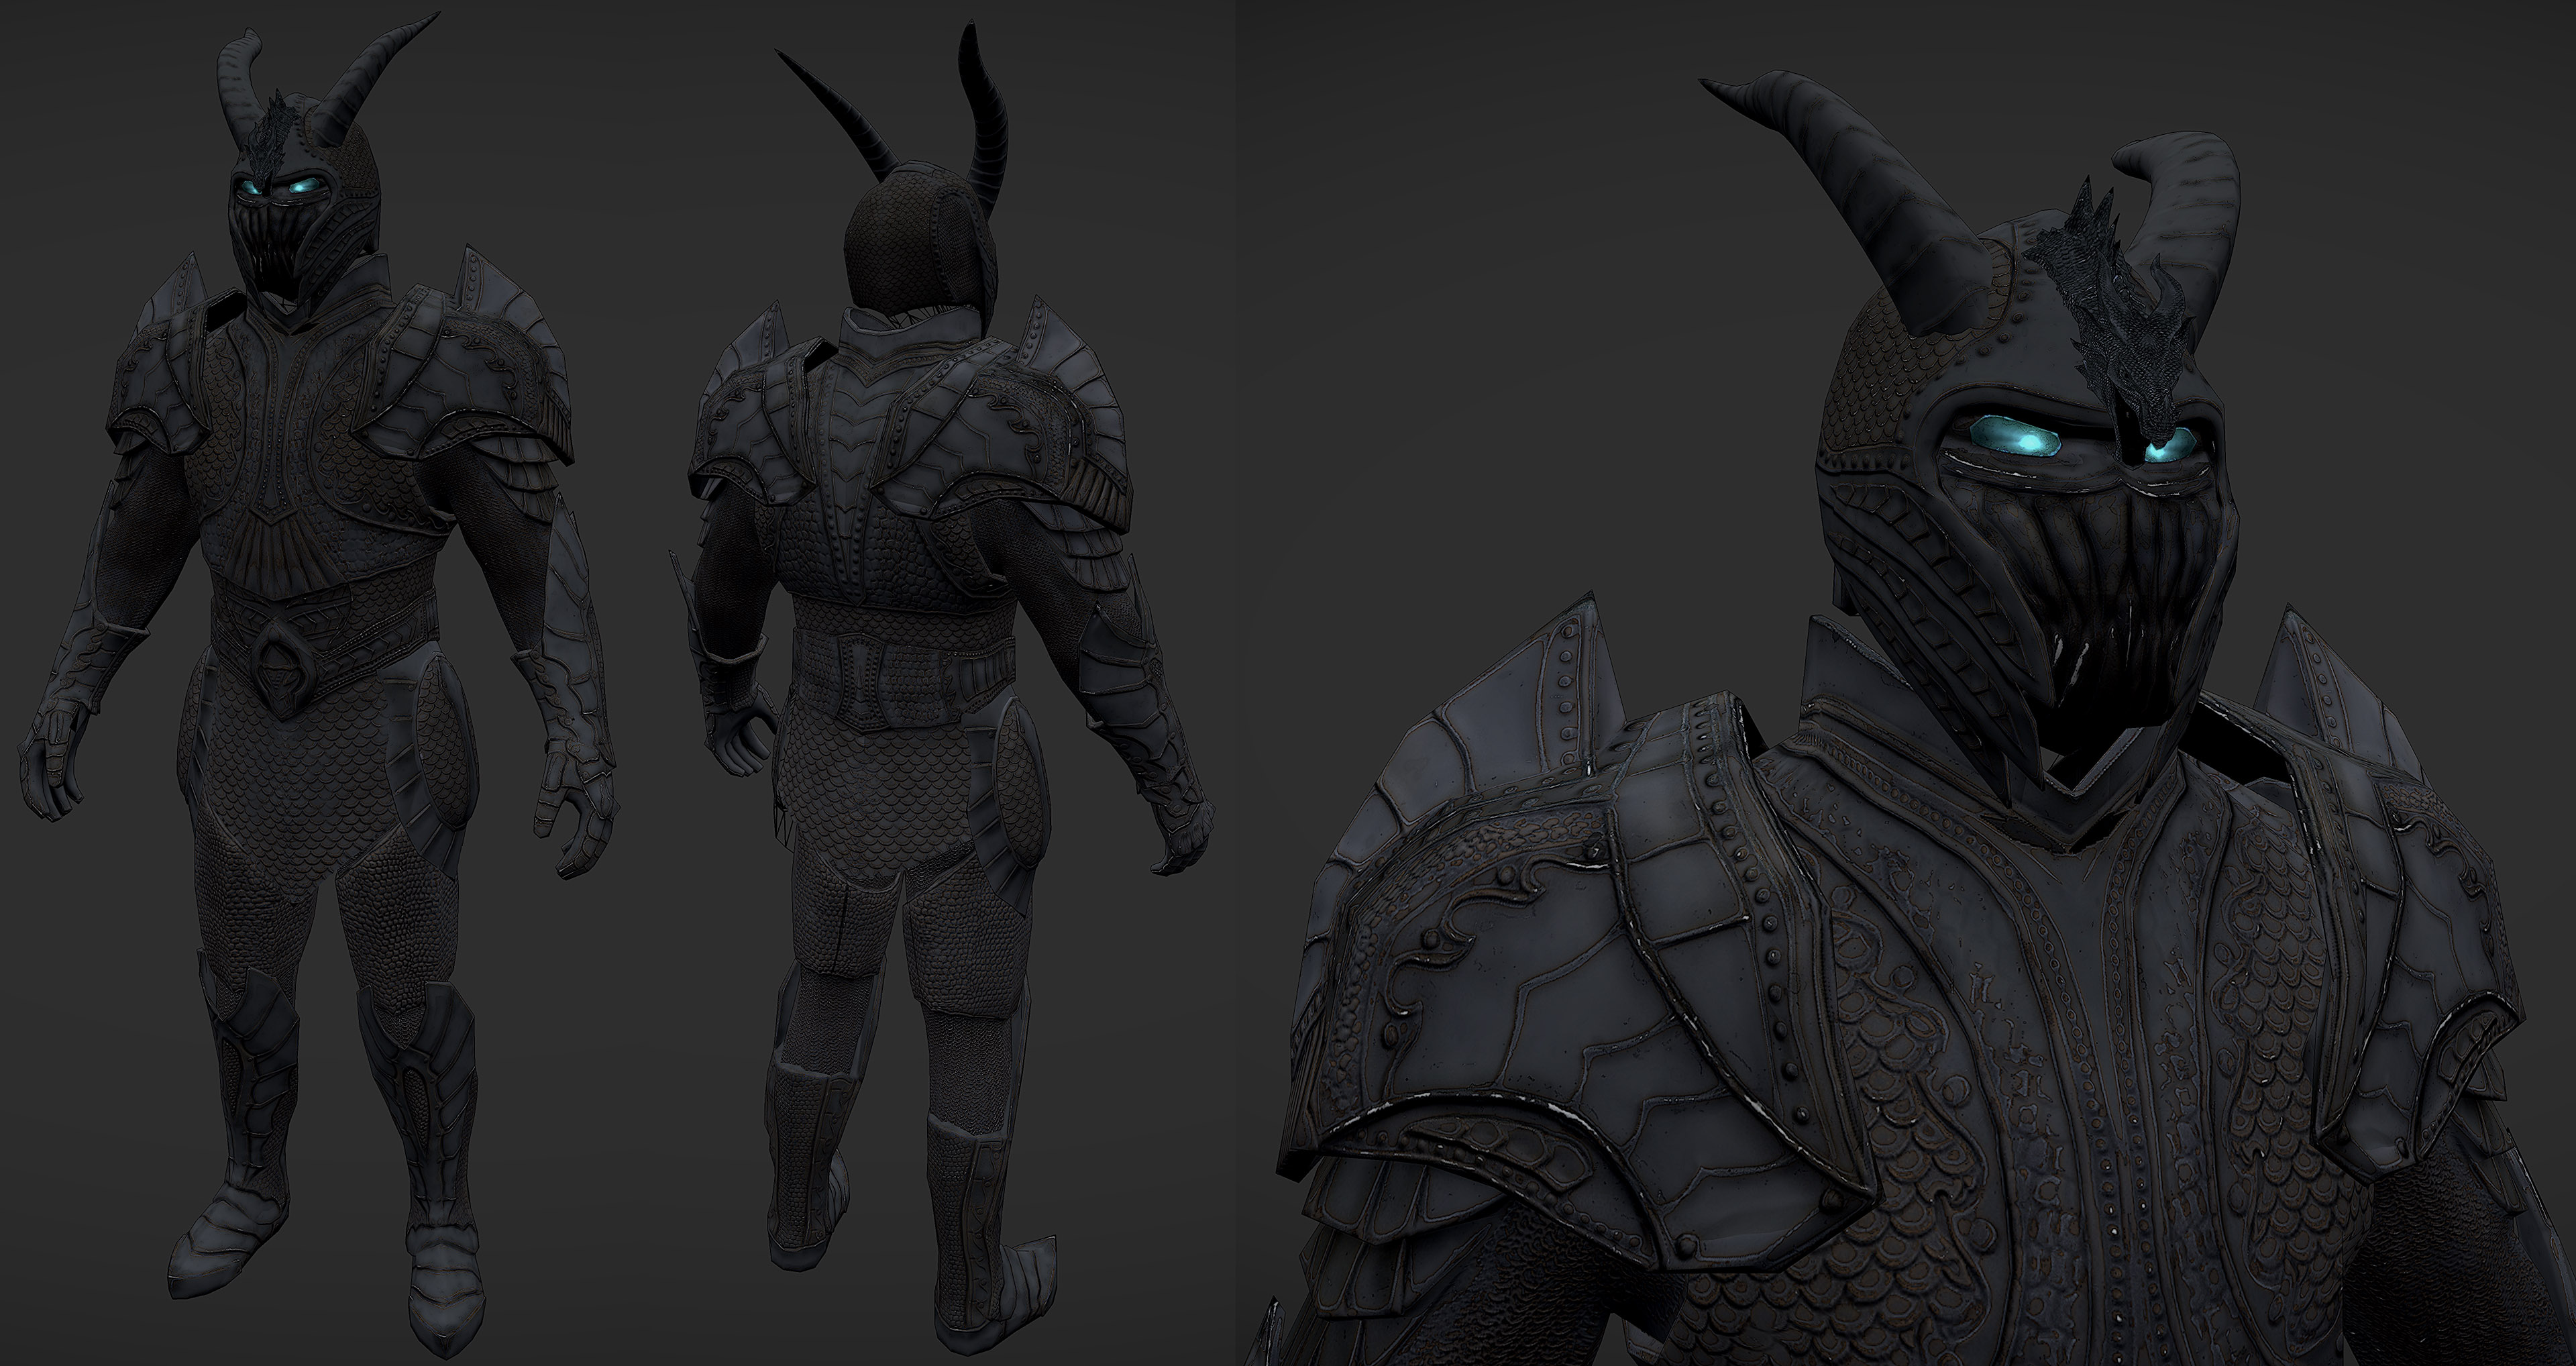 Ancient Dragon Knight Armor V2 By Newermind43 On Deviantart Basically just a normal knight with some spellsword mixed in; ancient dragon knight armor v2 by